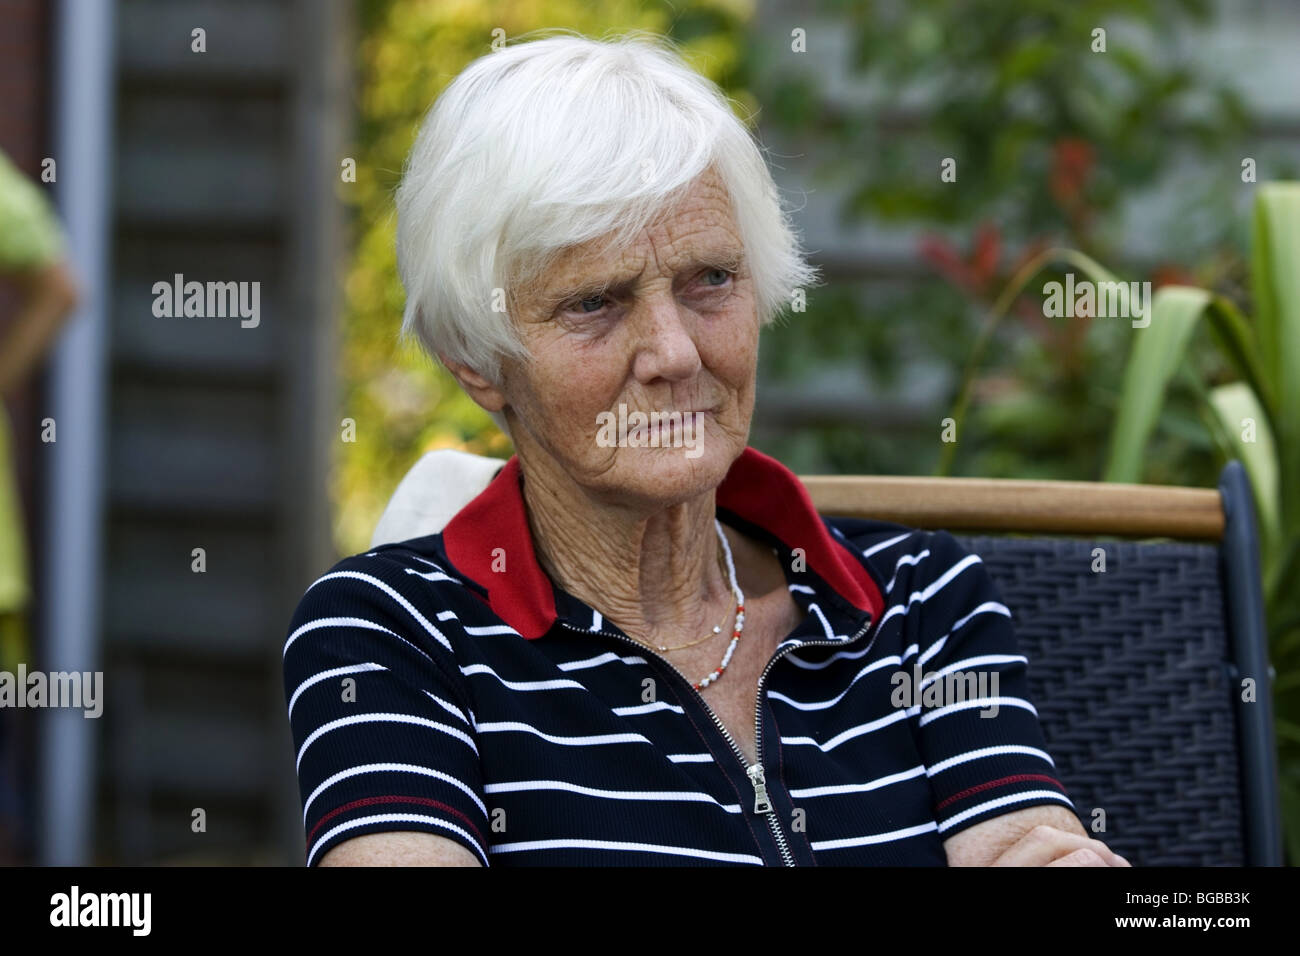 Unhappy elderly woman with white hair contemplating in back garden. - Stock Image